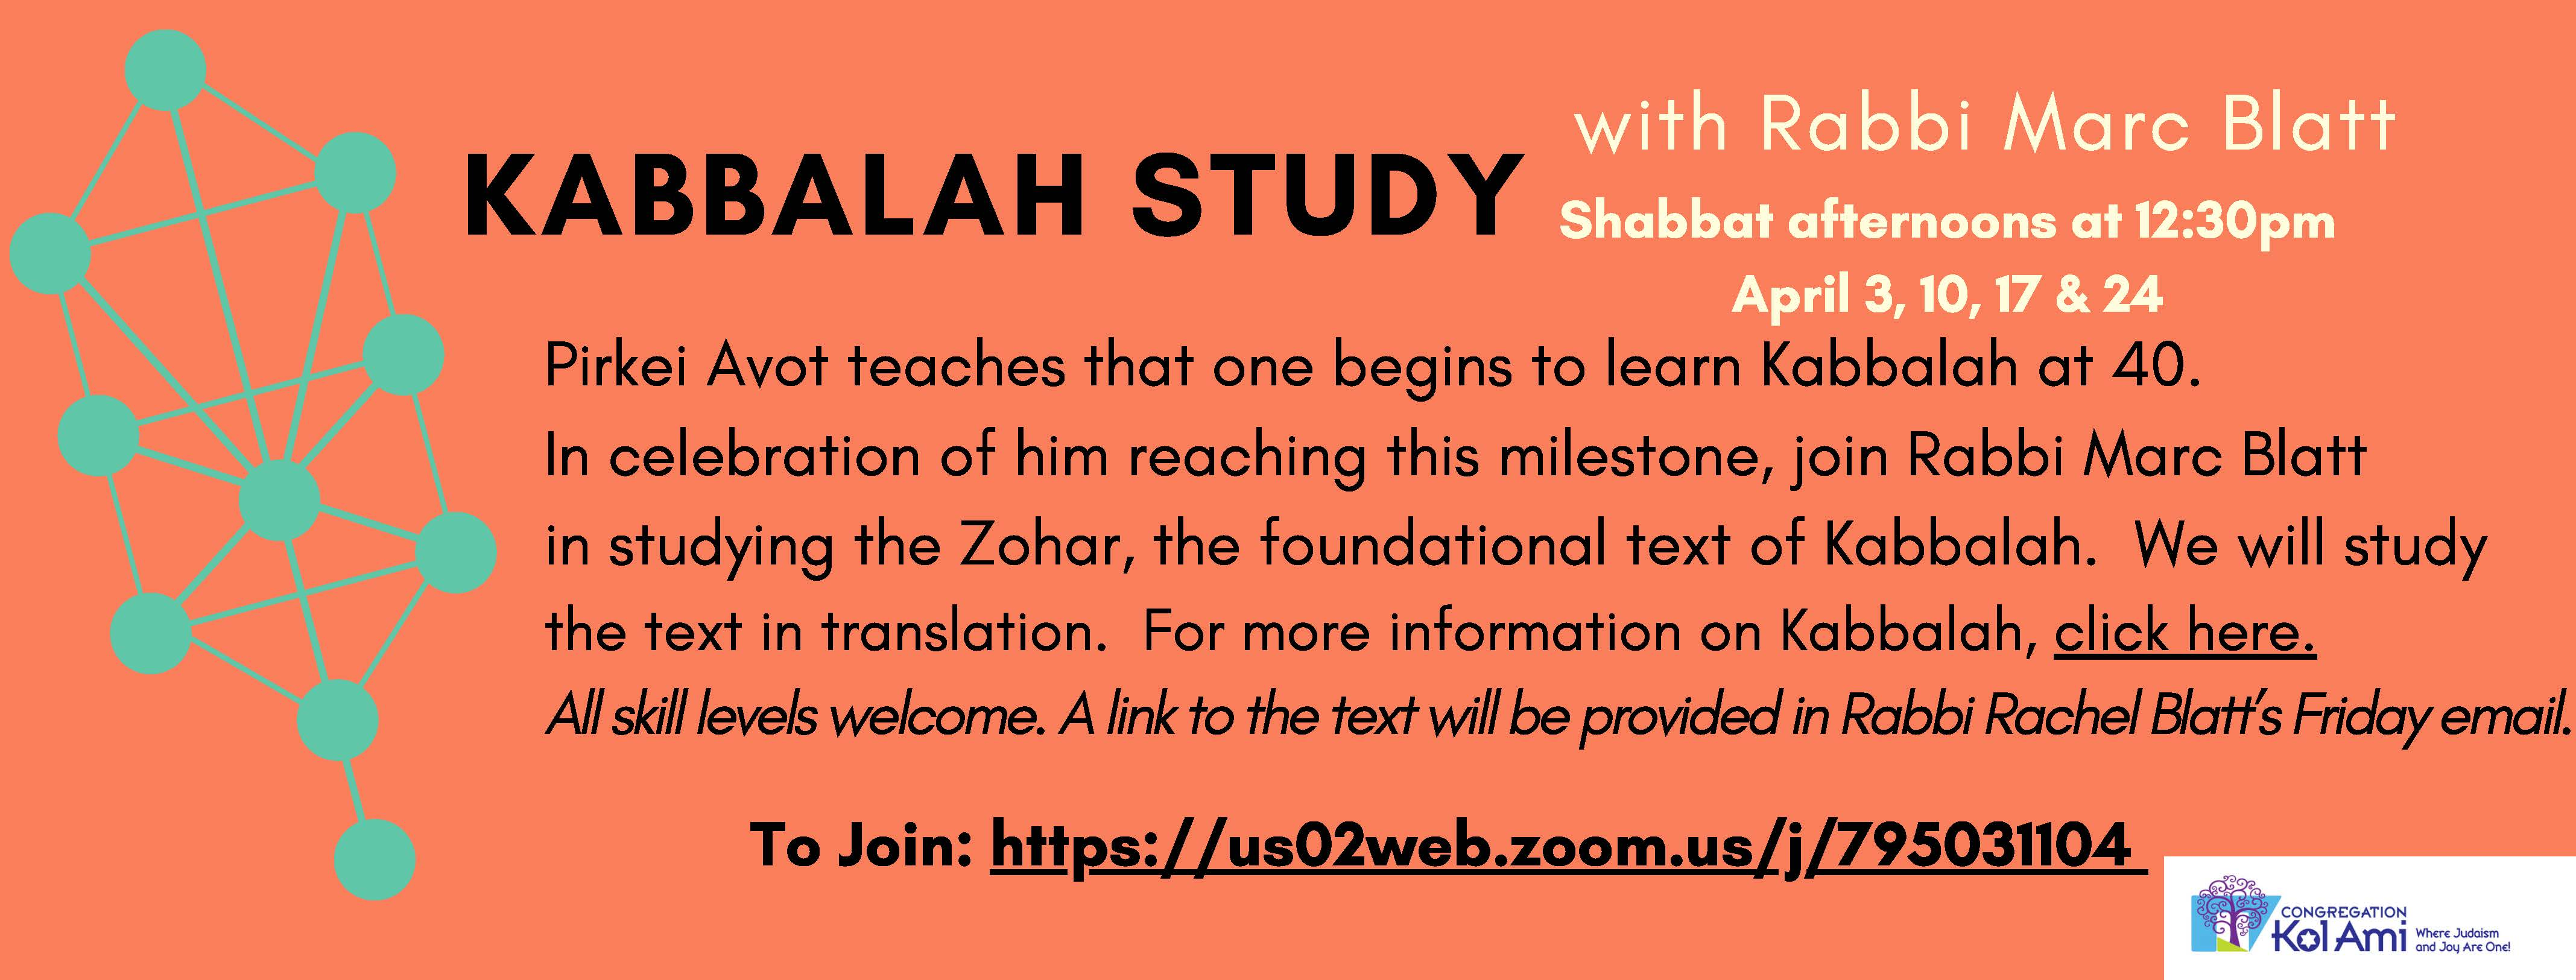 Banner Image for Virtual Kabbalah Study After Services with Rabbi Marc Blatt